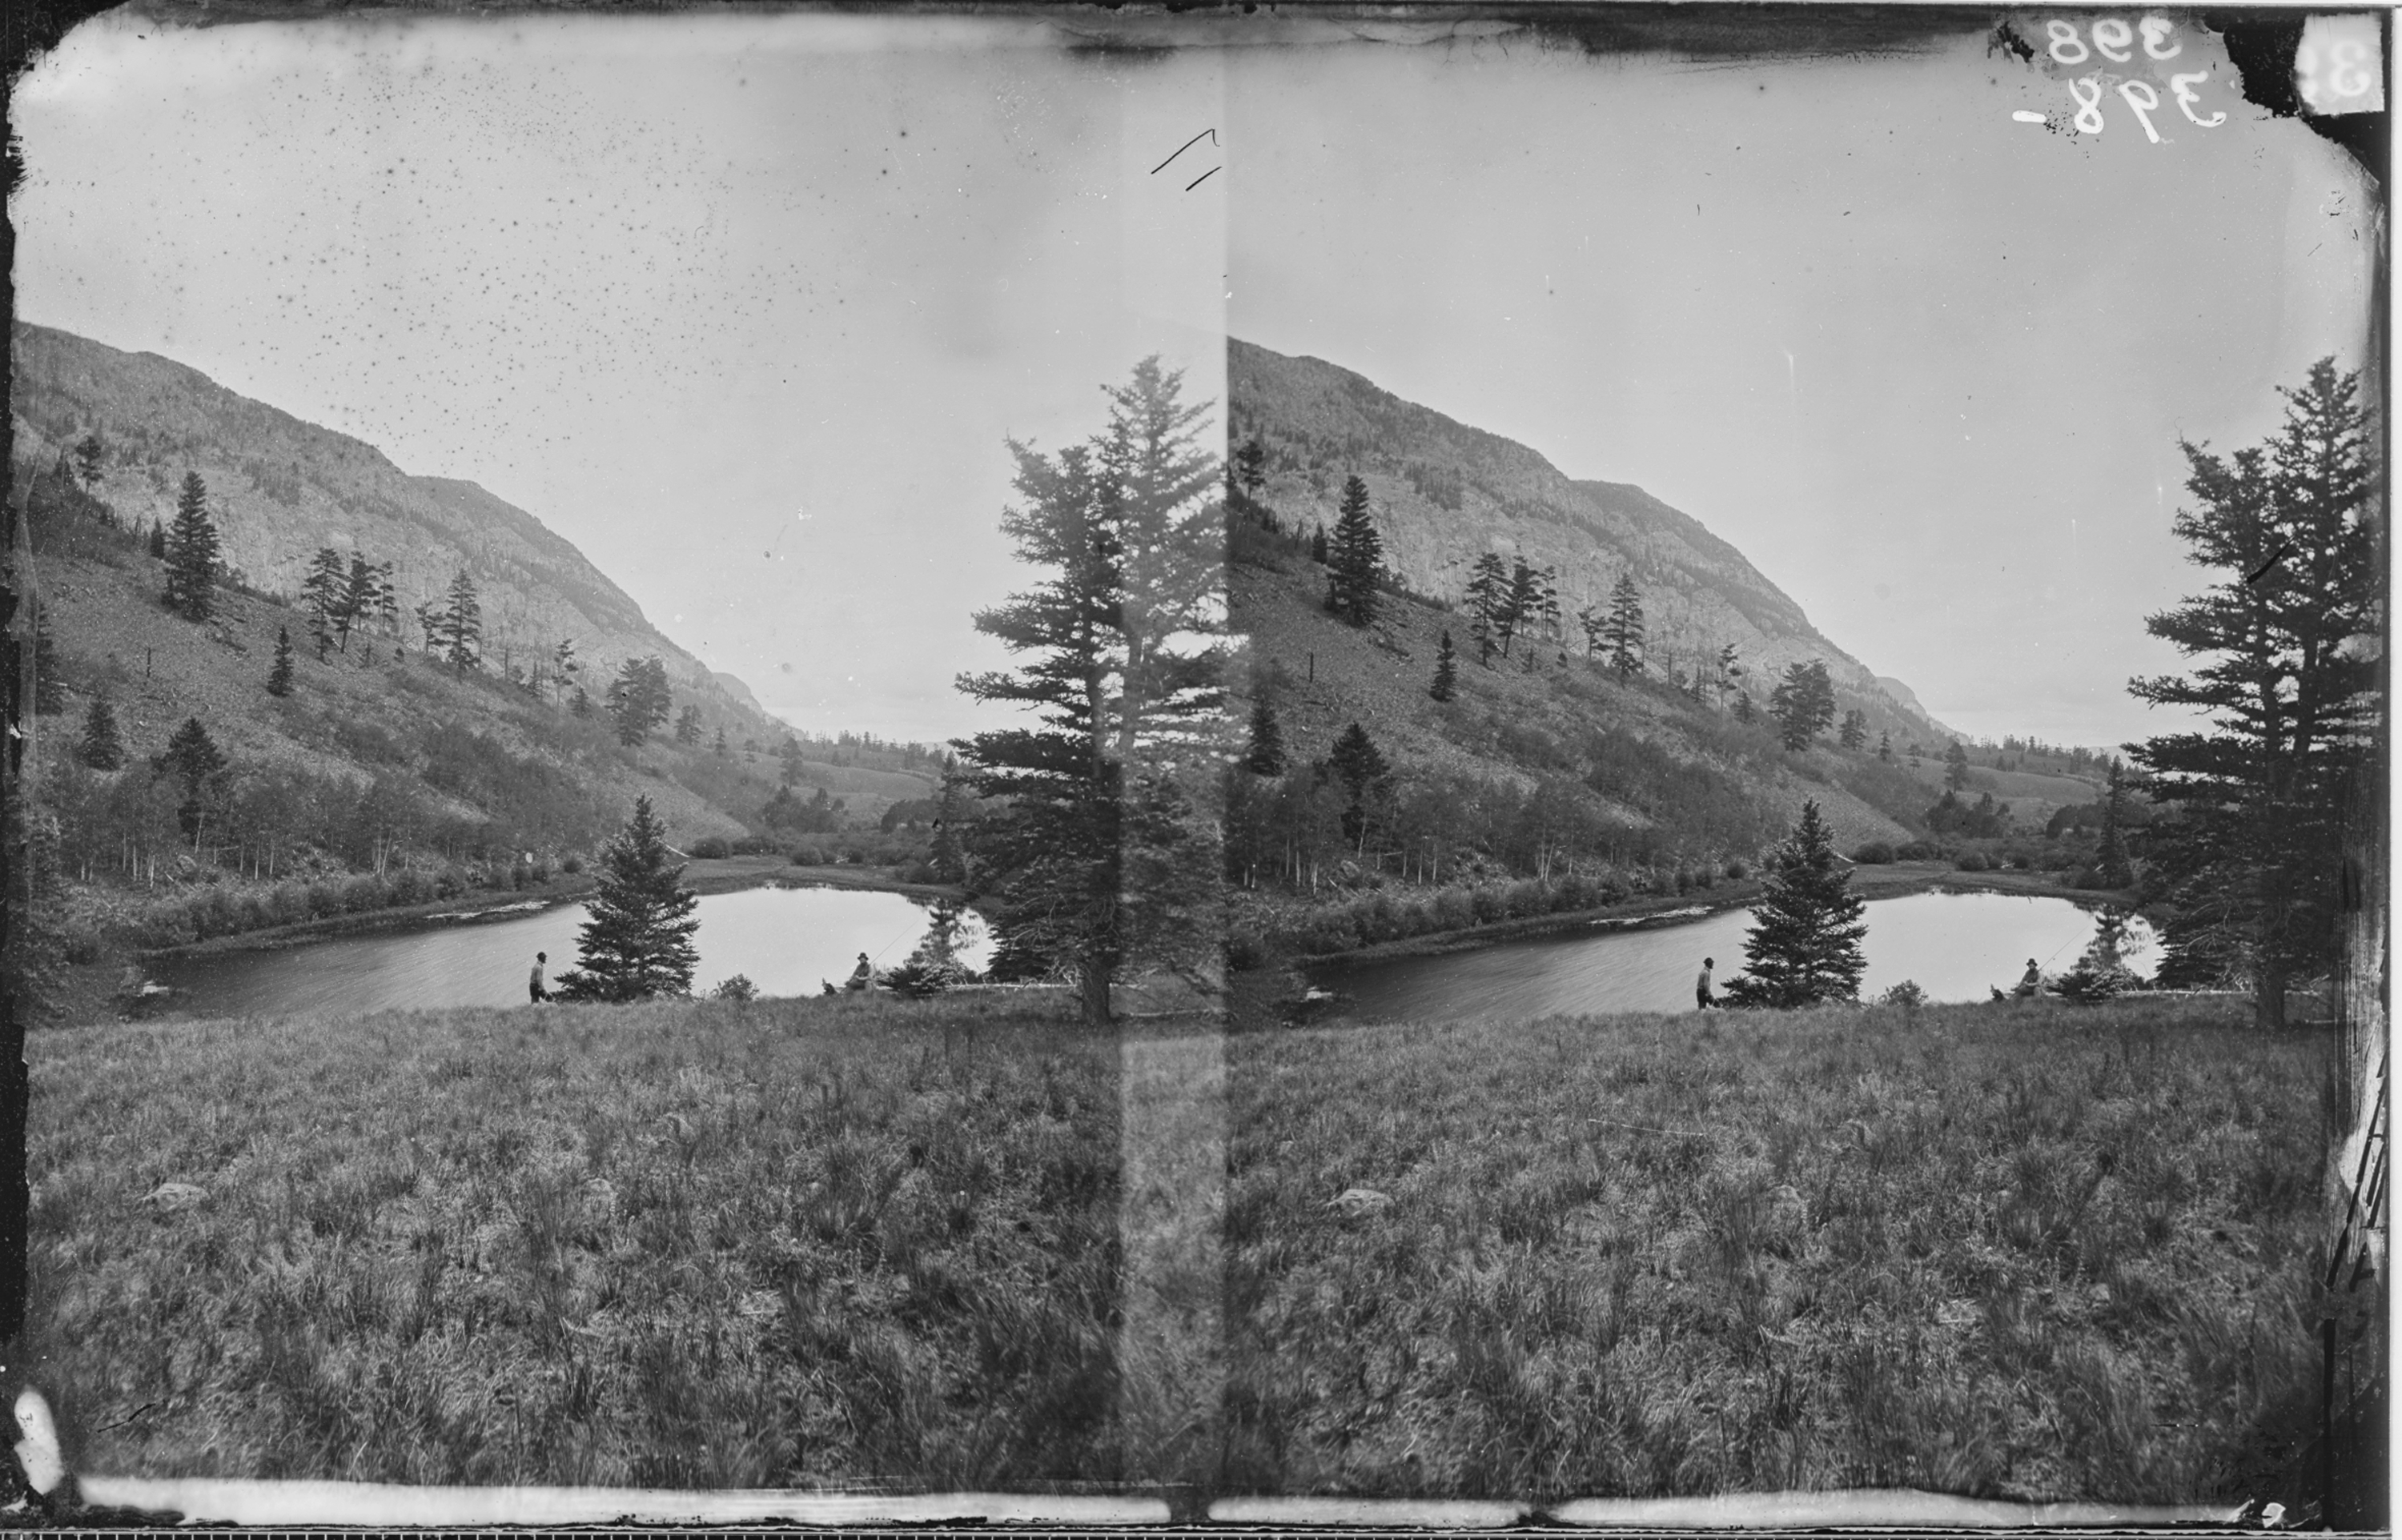 BEAVER LAKE, CONEJOS CANYON, COLORADO - NARA - 524037